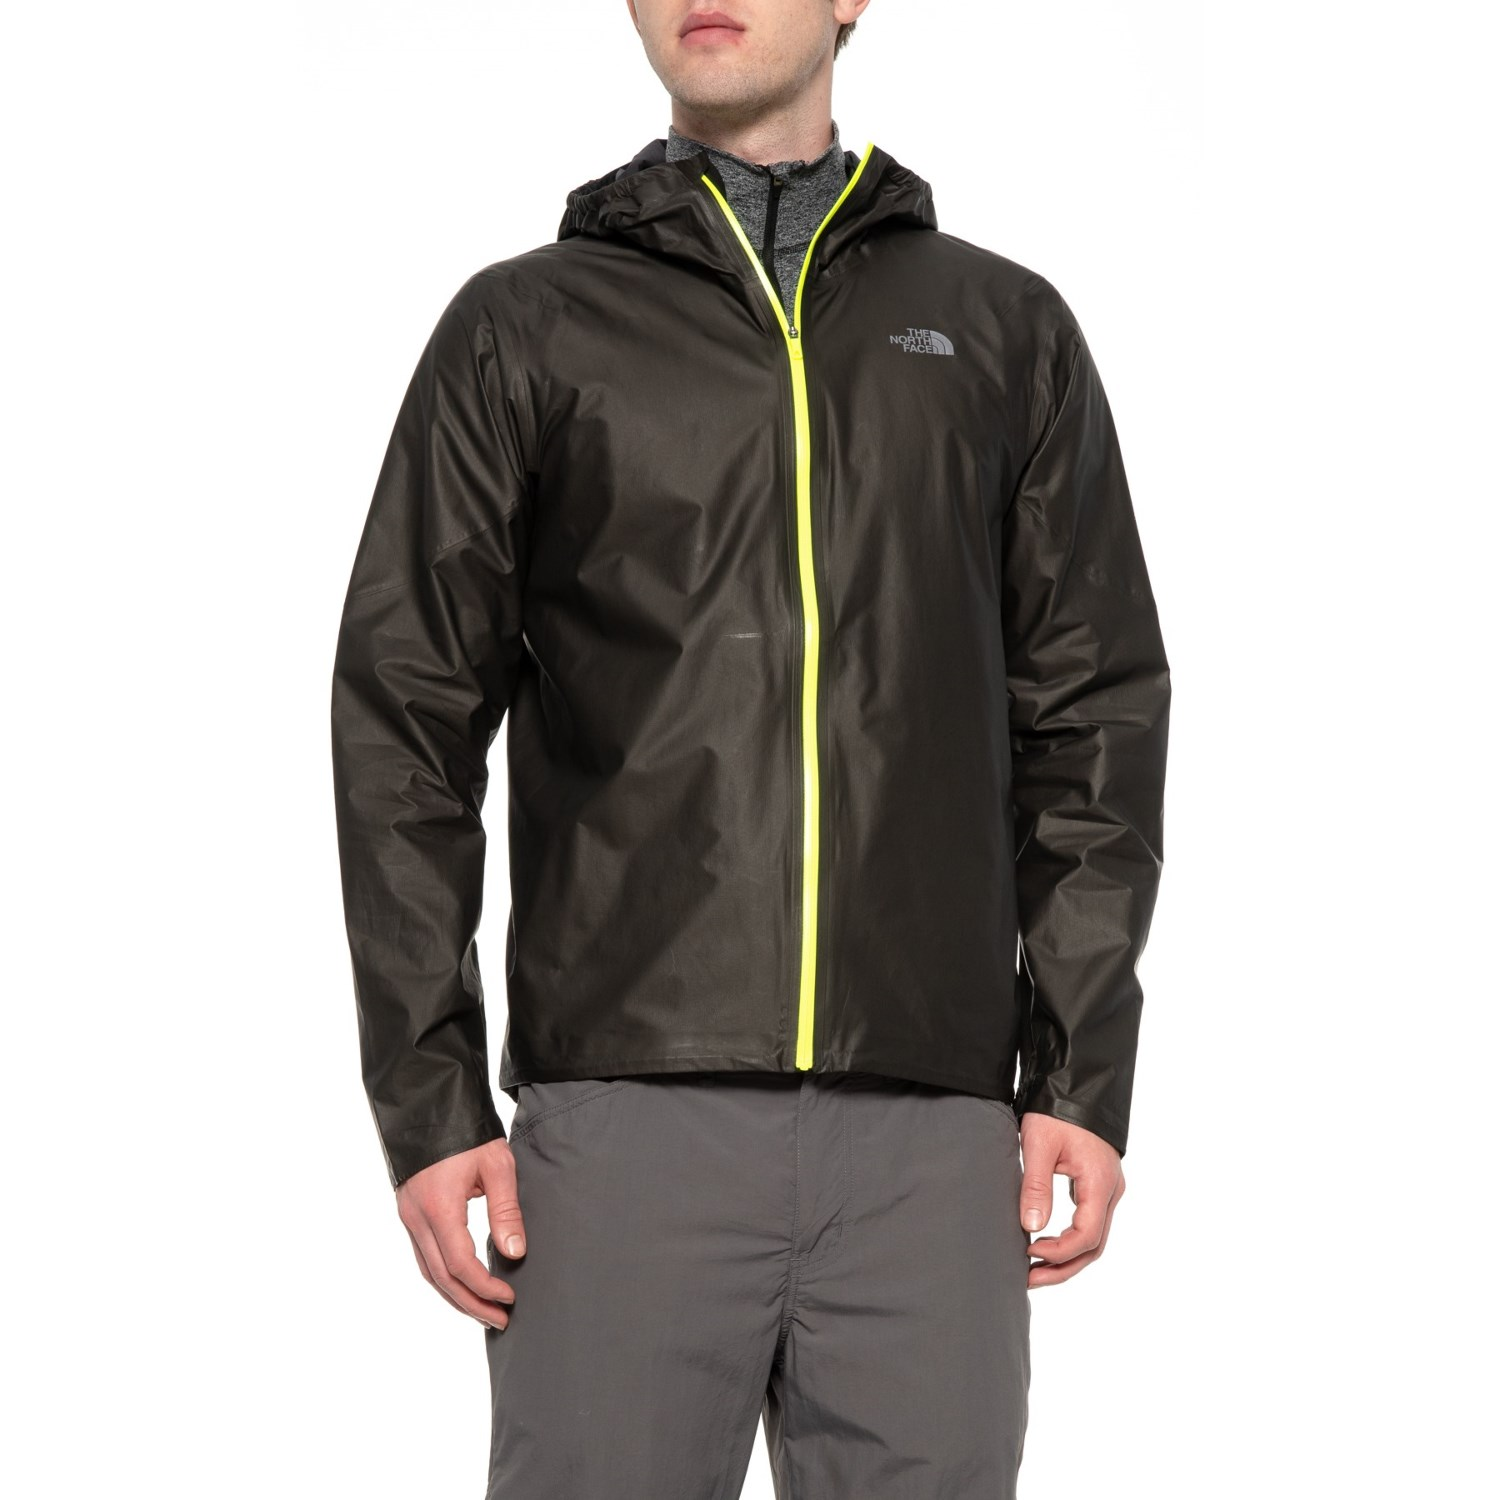 e2d0b47c7 The North Face HyperAir Gore-Tex® Jacket - Waterproof (For Men)